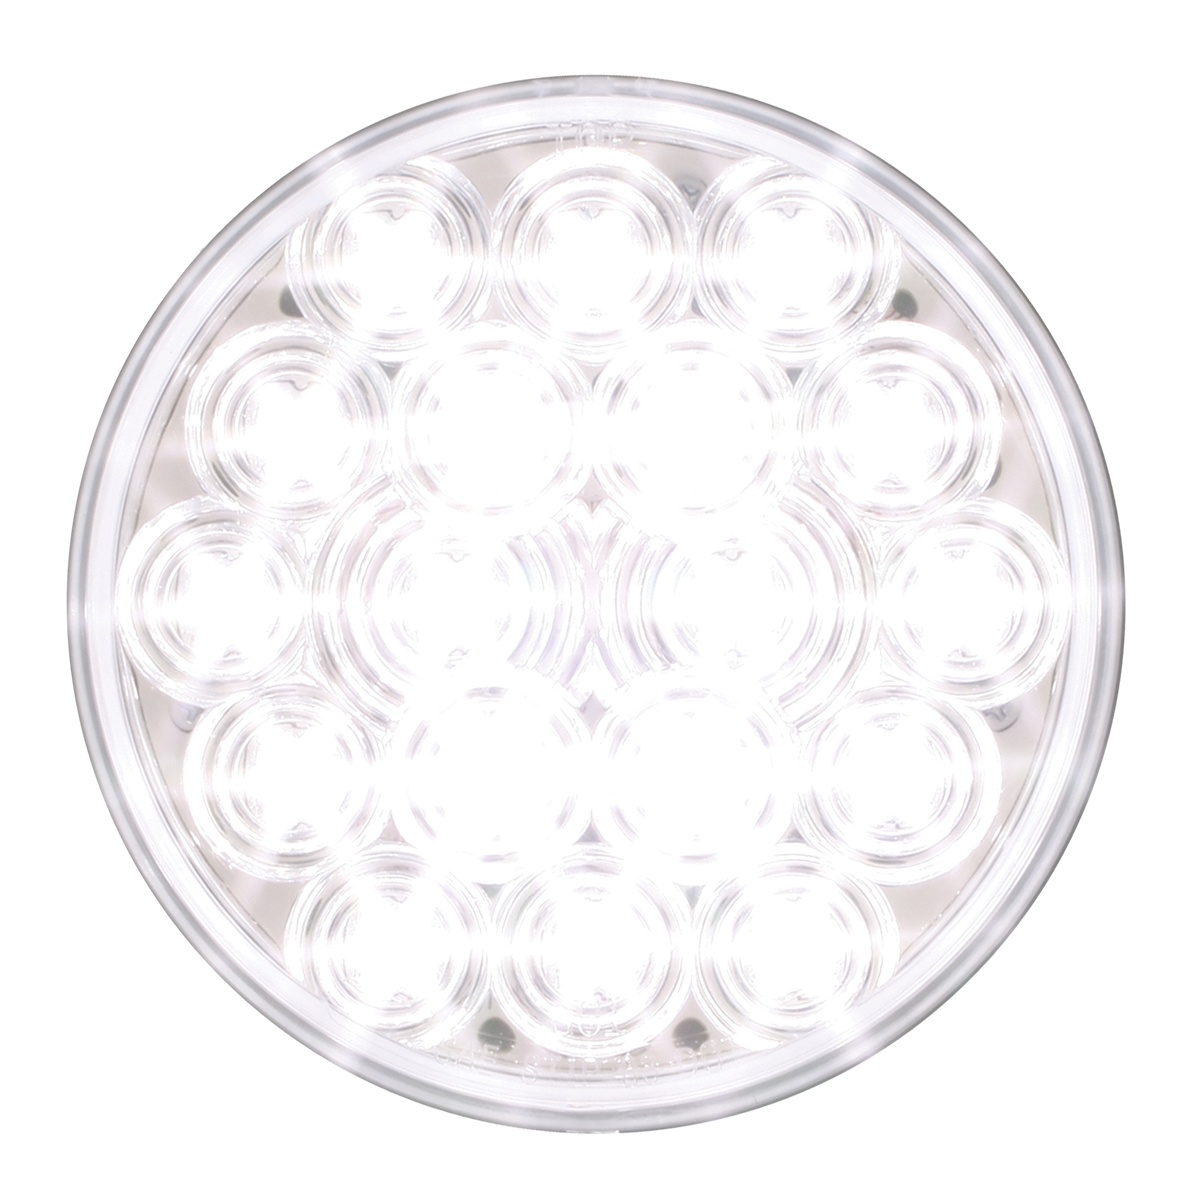 "76454 4"" Fleet LED Light in White/Clear"